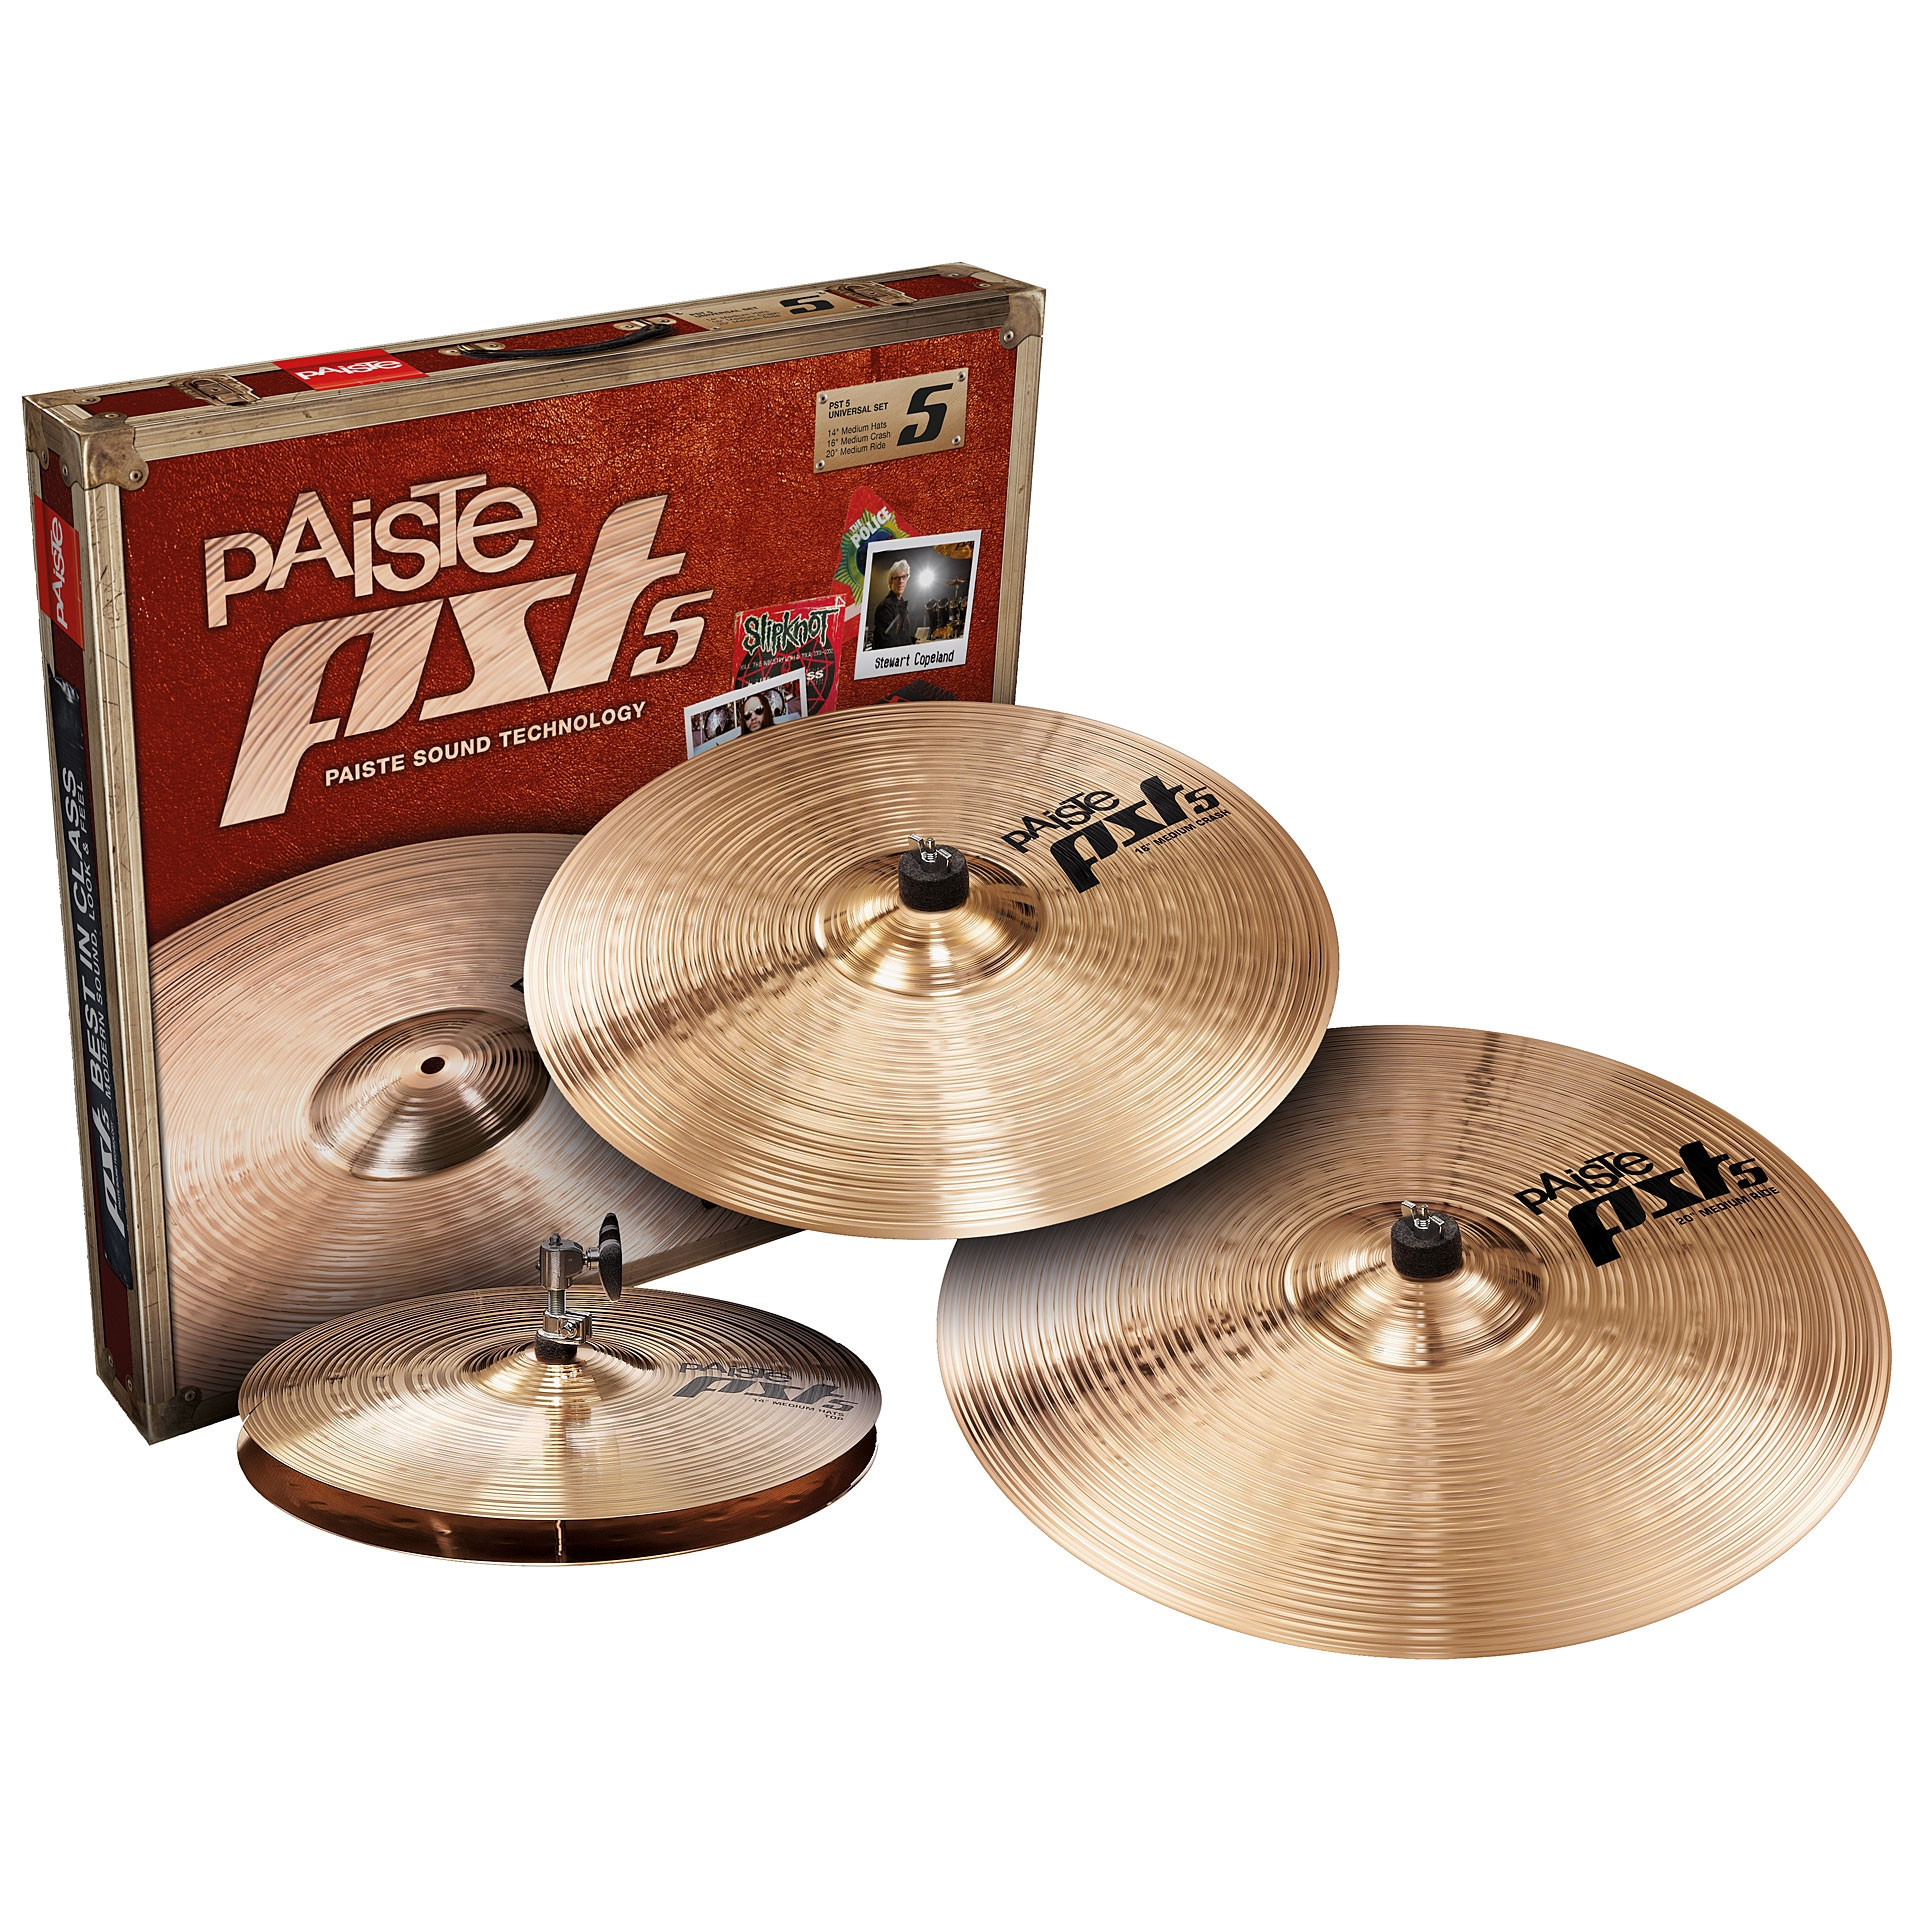 "PAISTE PST5 UNIVERSAL SET 14"" MEDIUM HATS 18"" MEDIUM CRASH 20"" MEDIUM RIDE + 16"" MEDIUM CRASH KIT PIATTI PATTERIA PST-5"